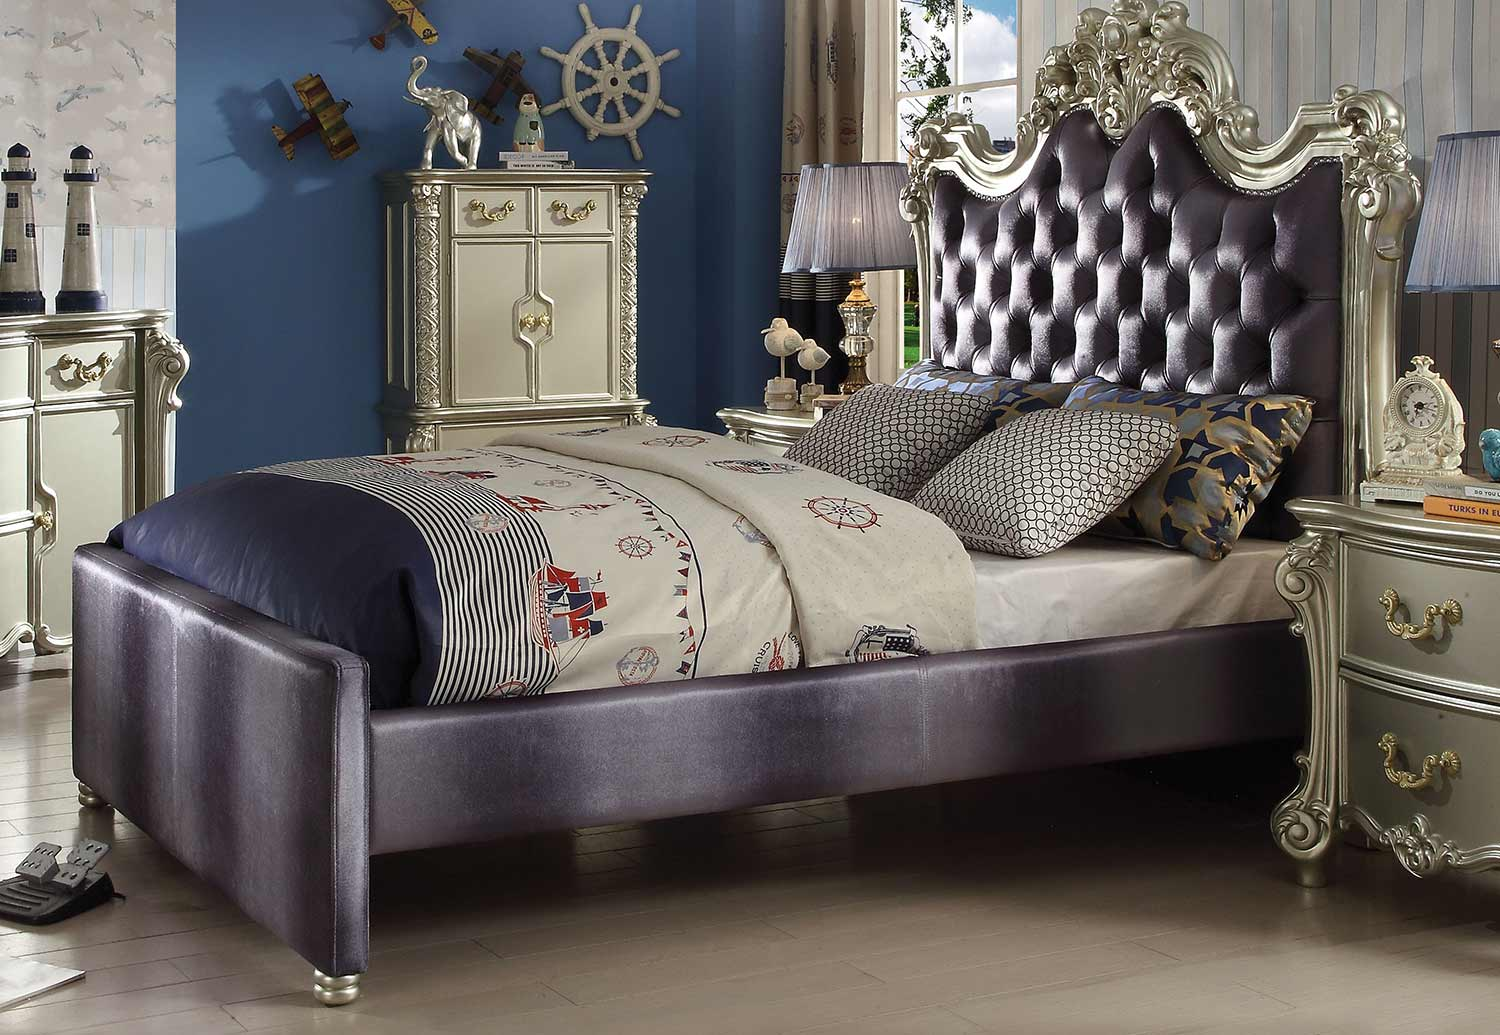 Acme Vendome II Bed - Gray Fabric/Champagne